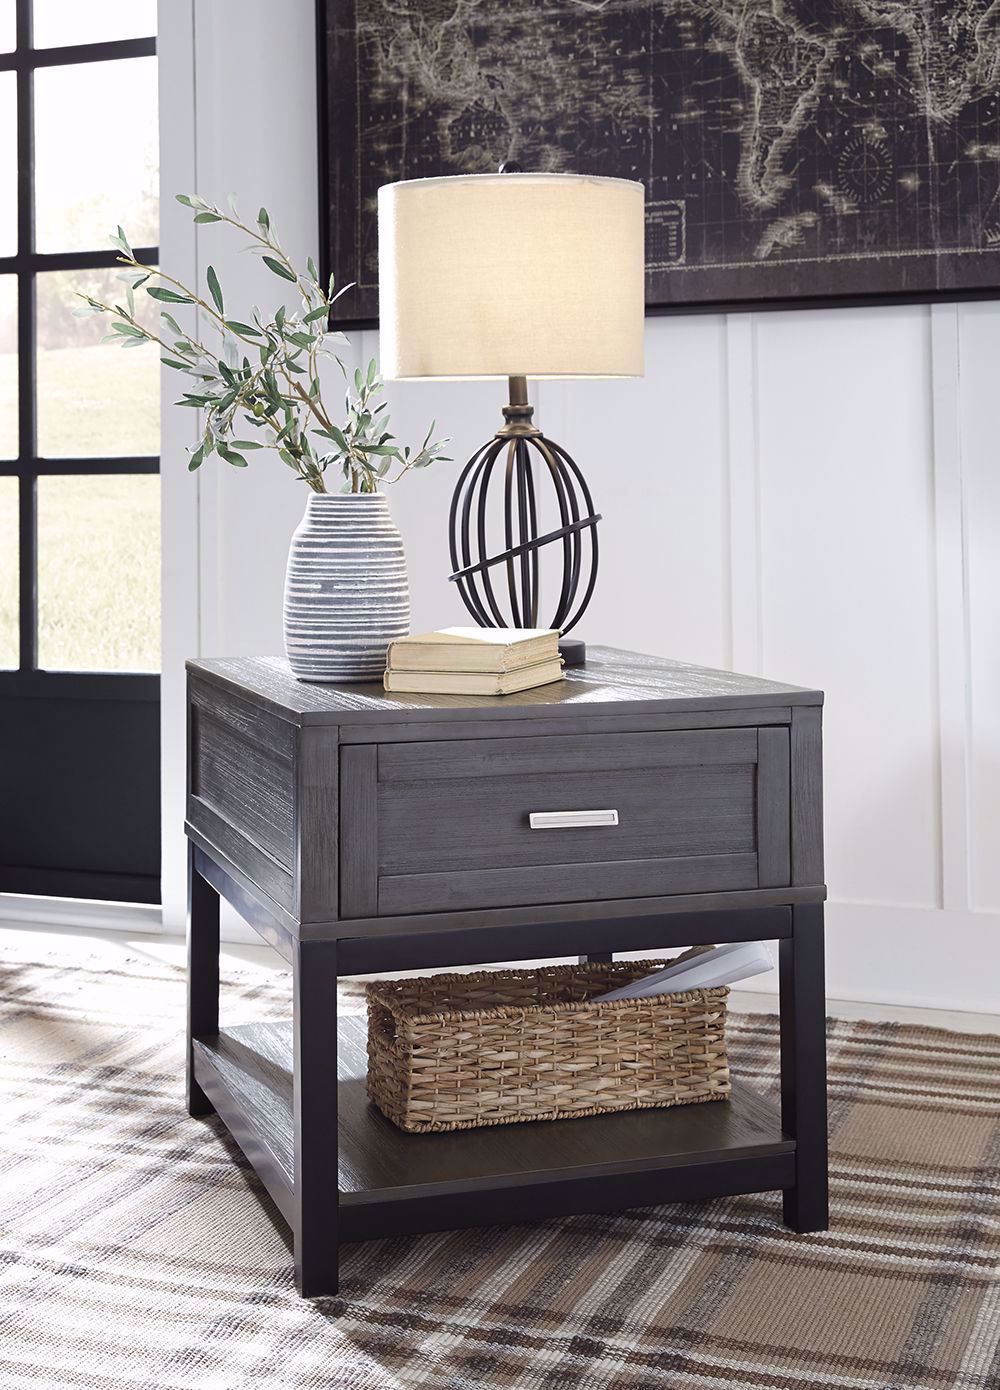 Picture of Caitbrook Grey and Black Rectangular End Table